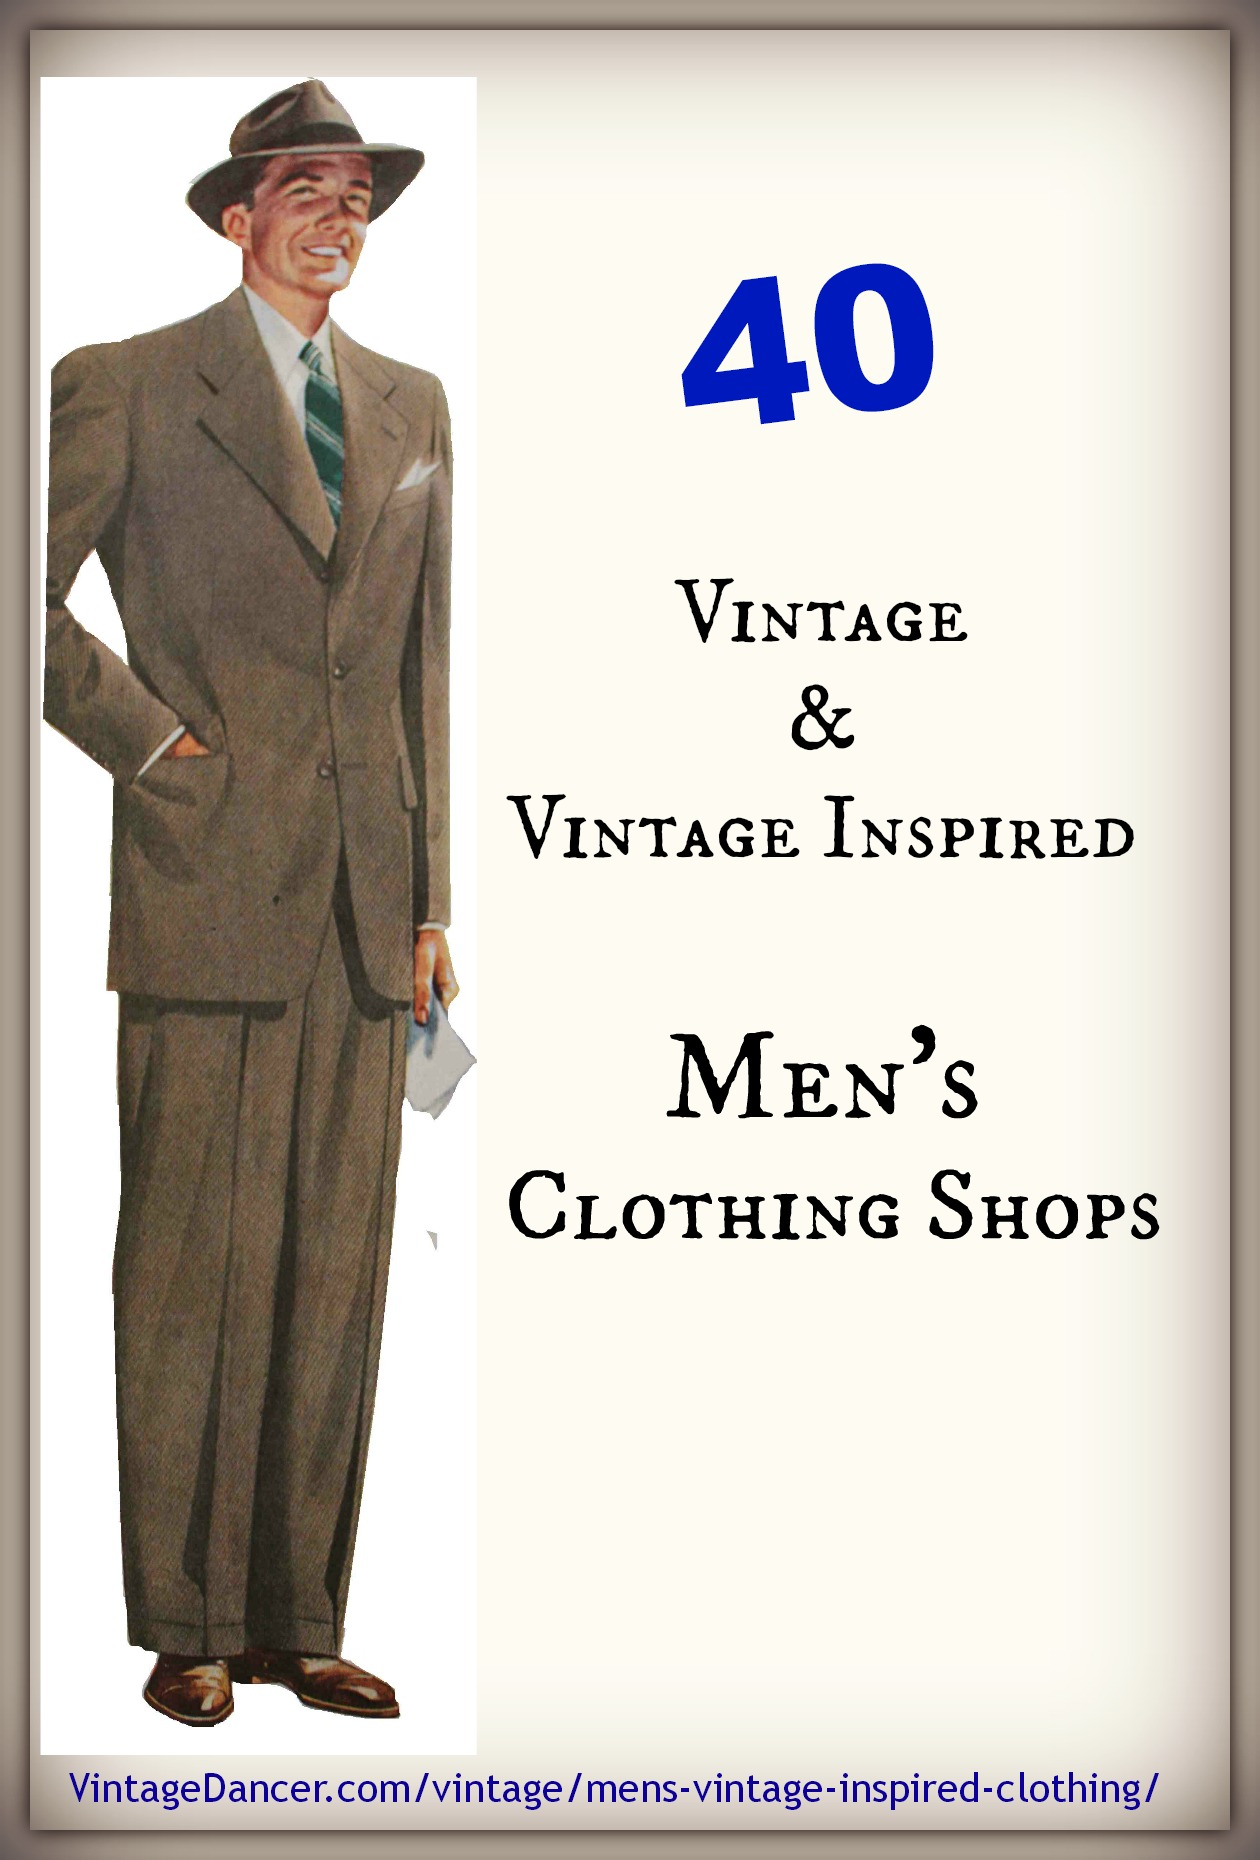 Vintage clothing stores online men